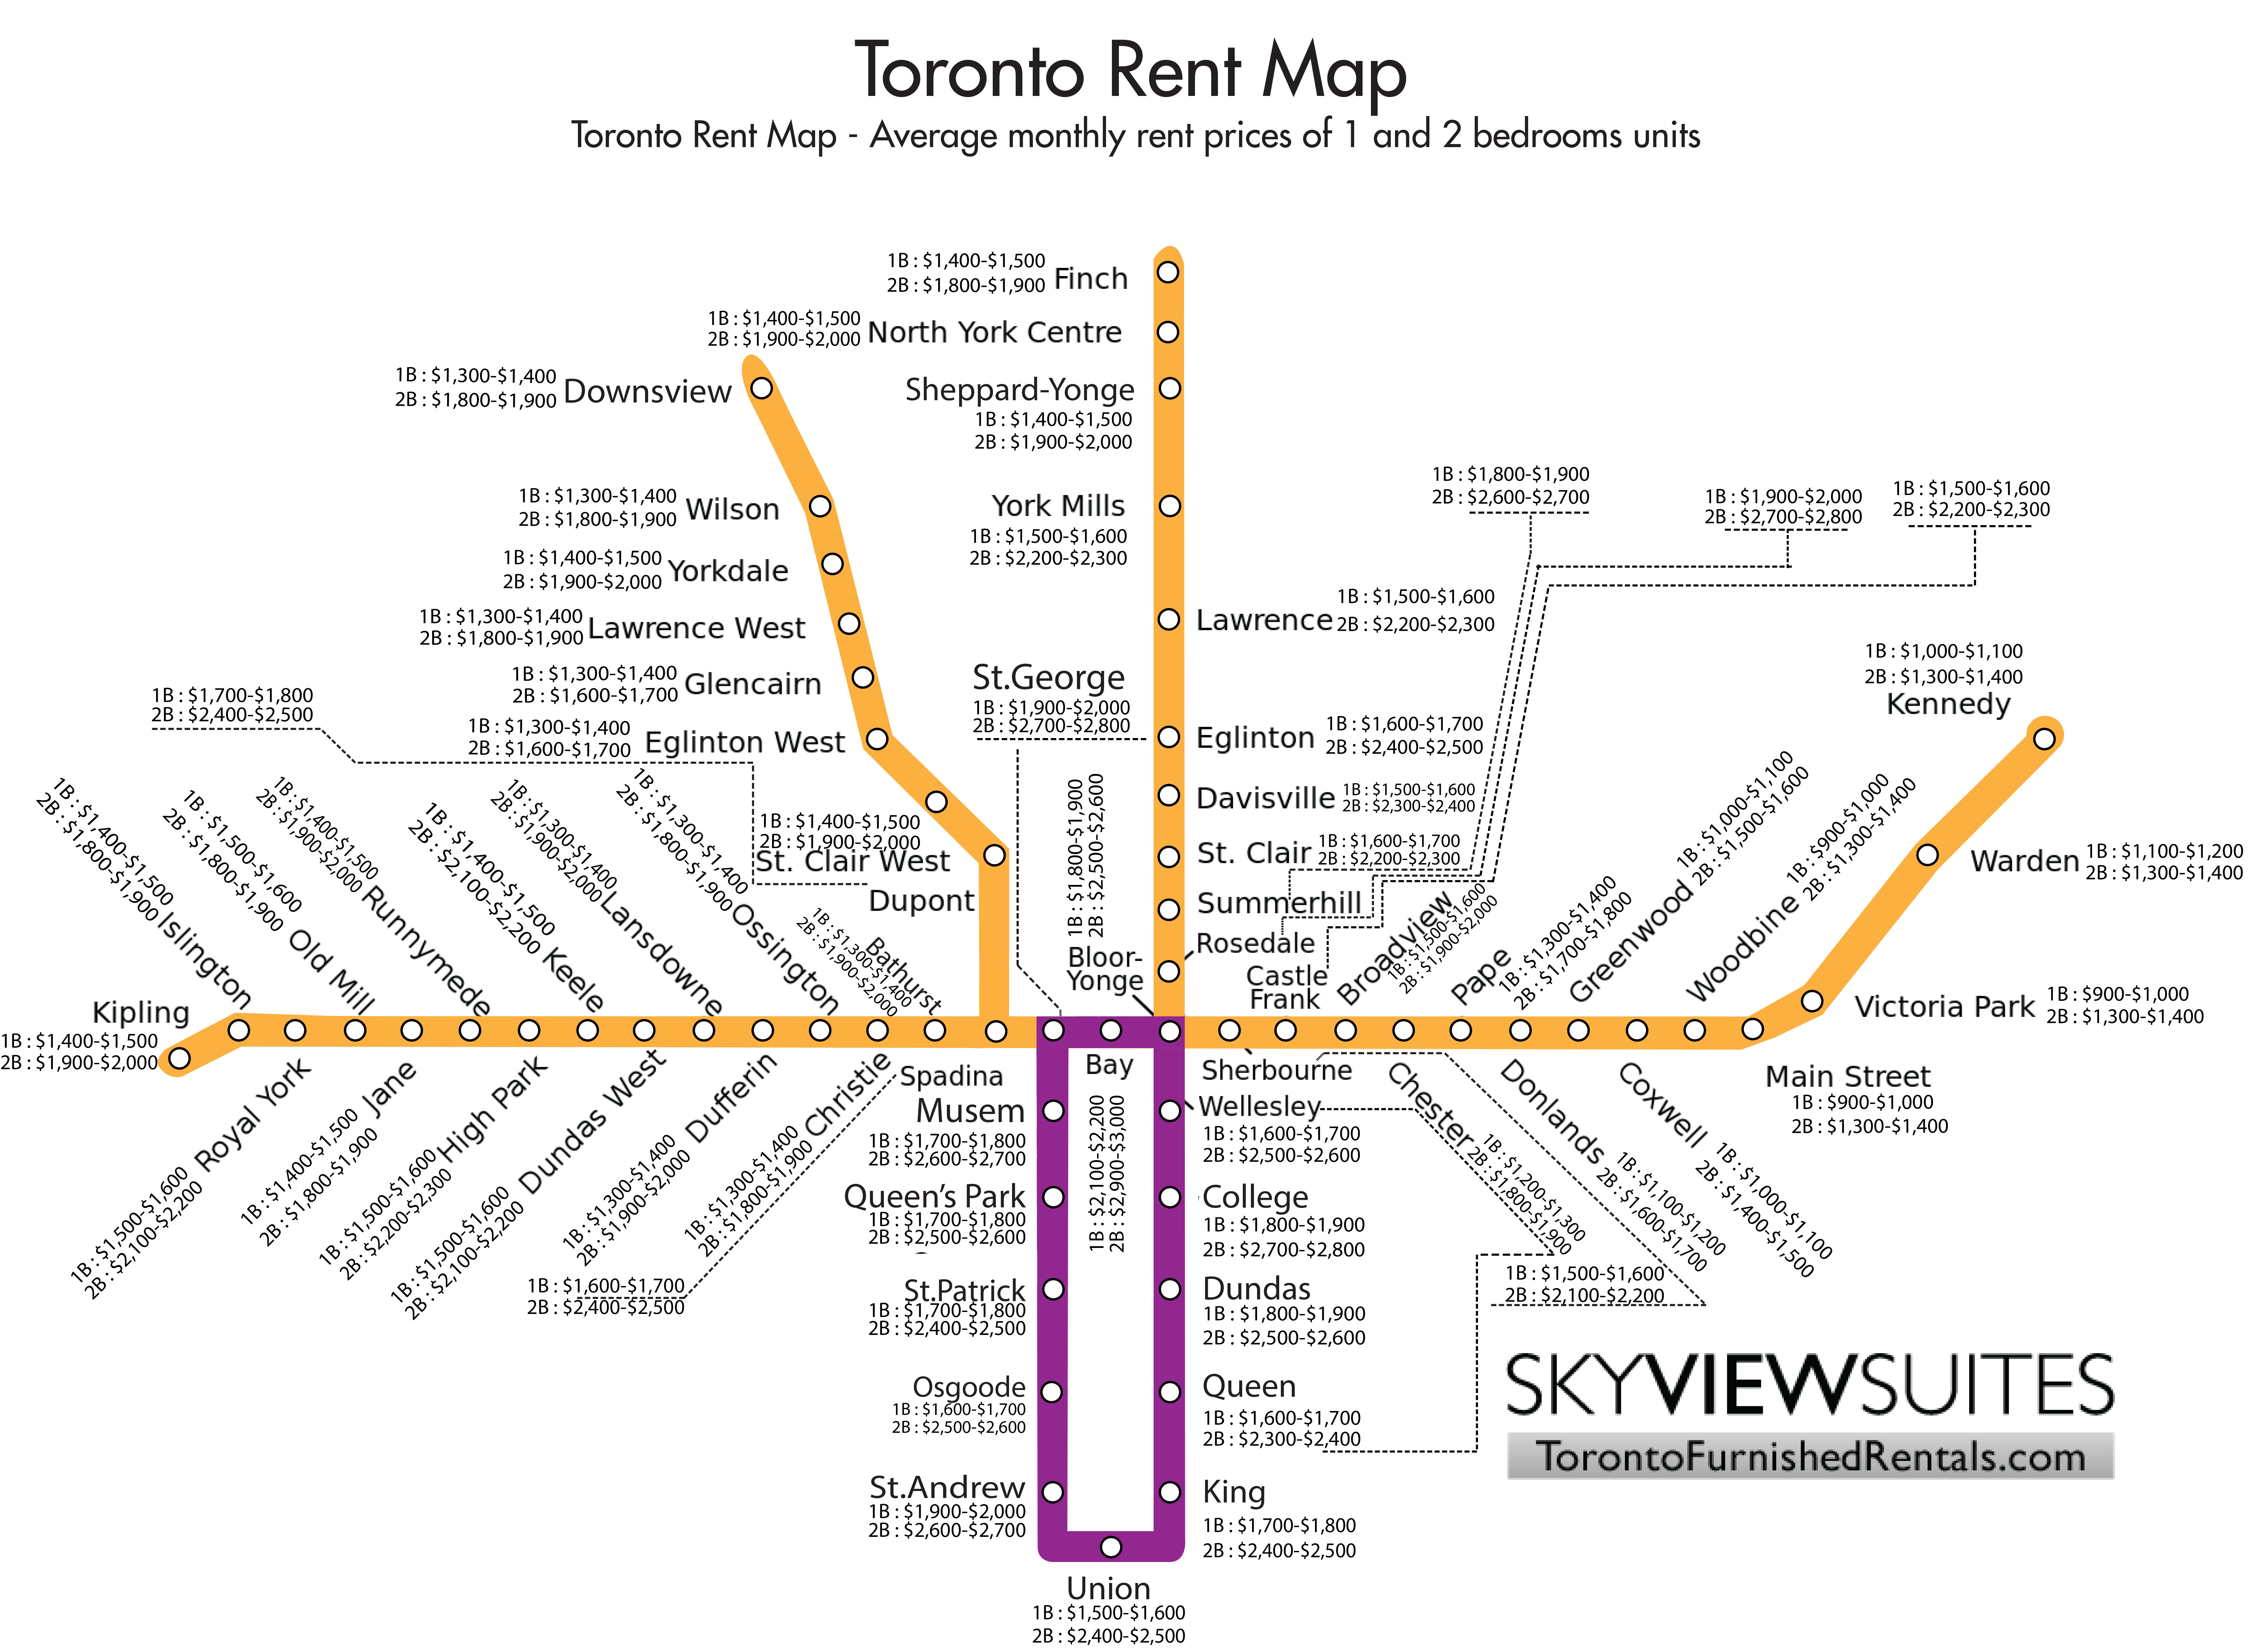 Toronto Subway Map With Streets.Toronto Rent Map